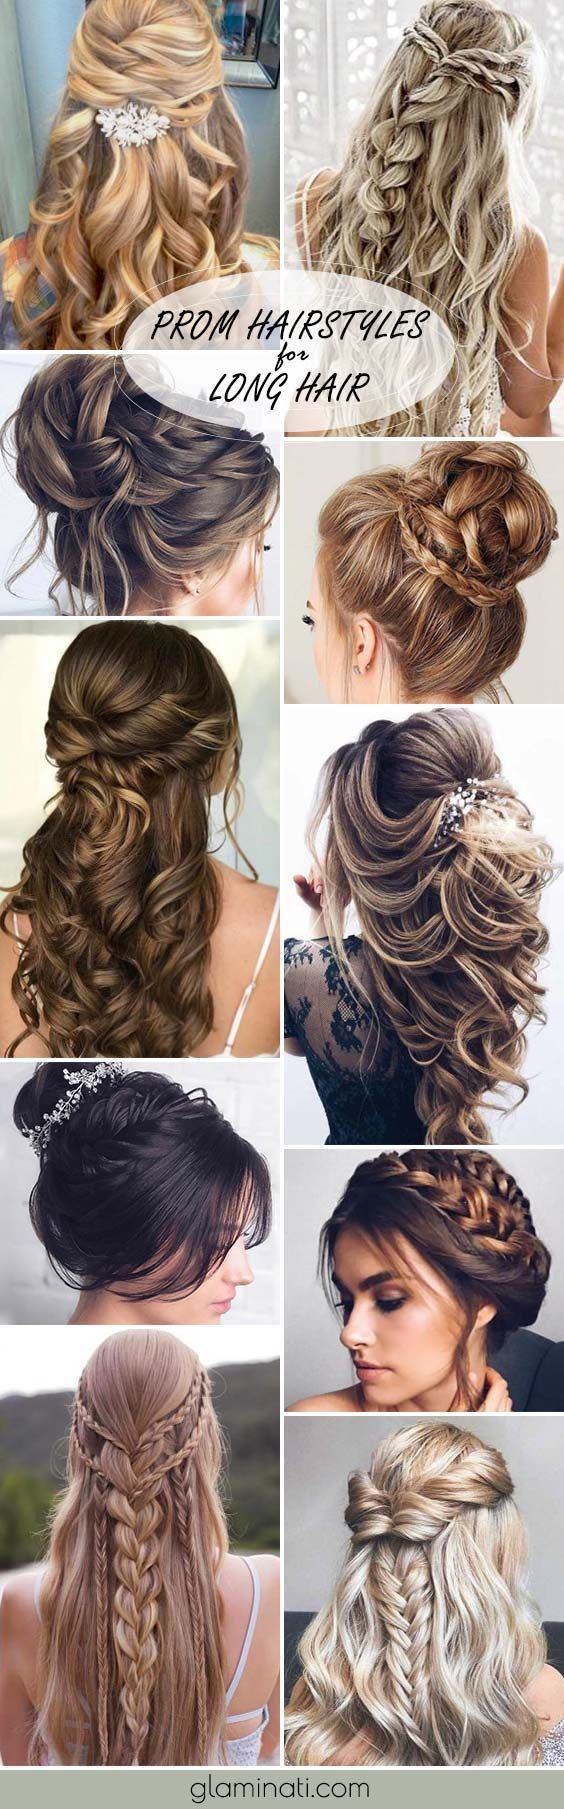 How To Do Hairstyles For Long Hair 1056 Best Prom Hairstyles For Black Girls Images On Pinterest